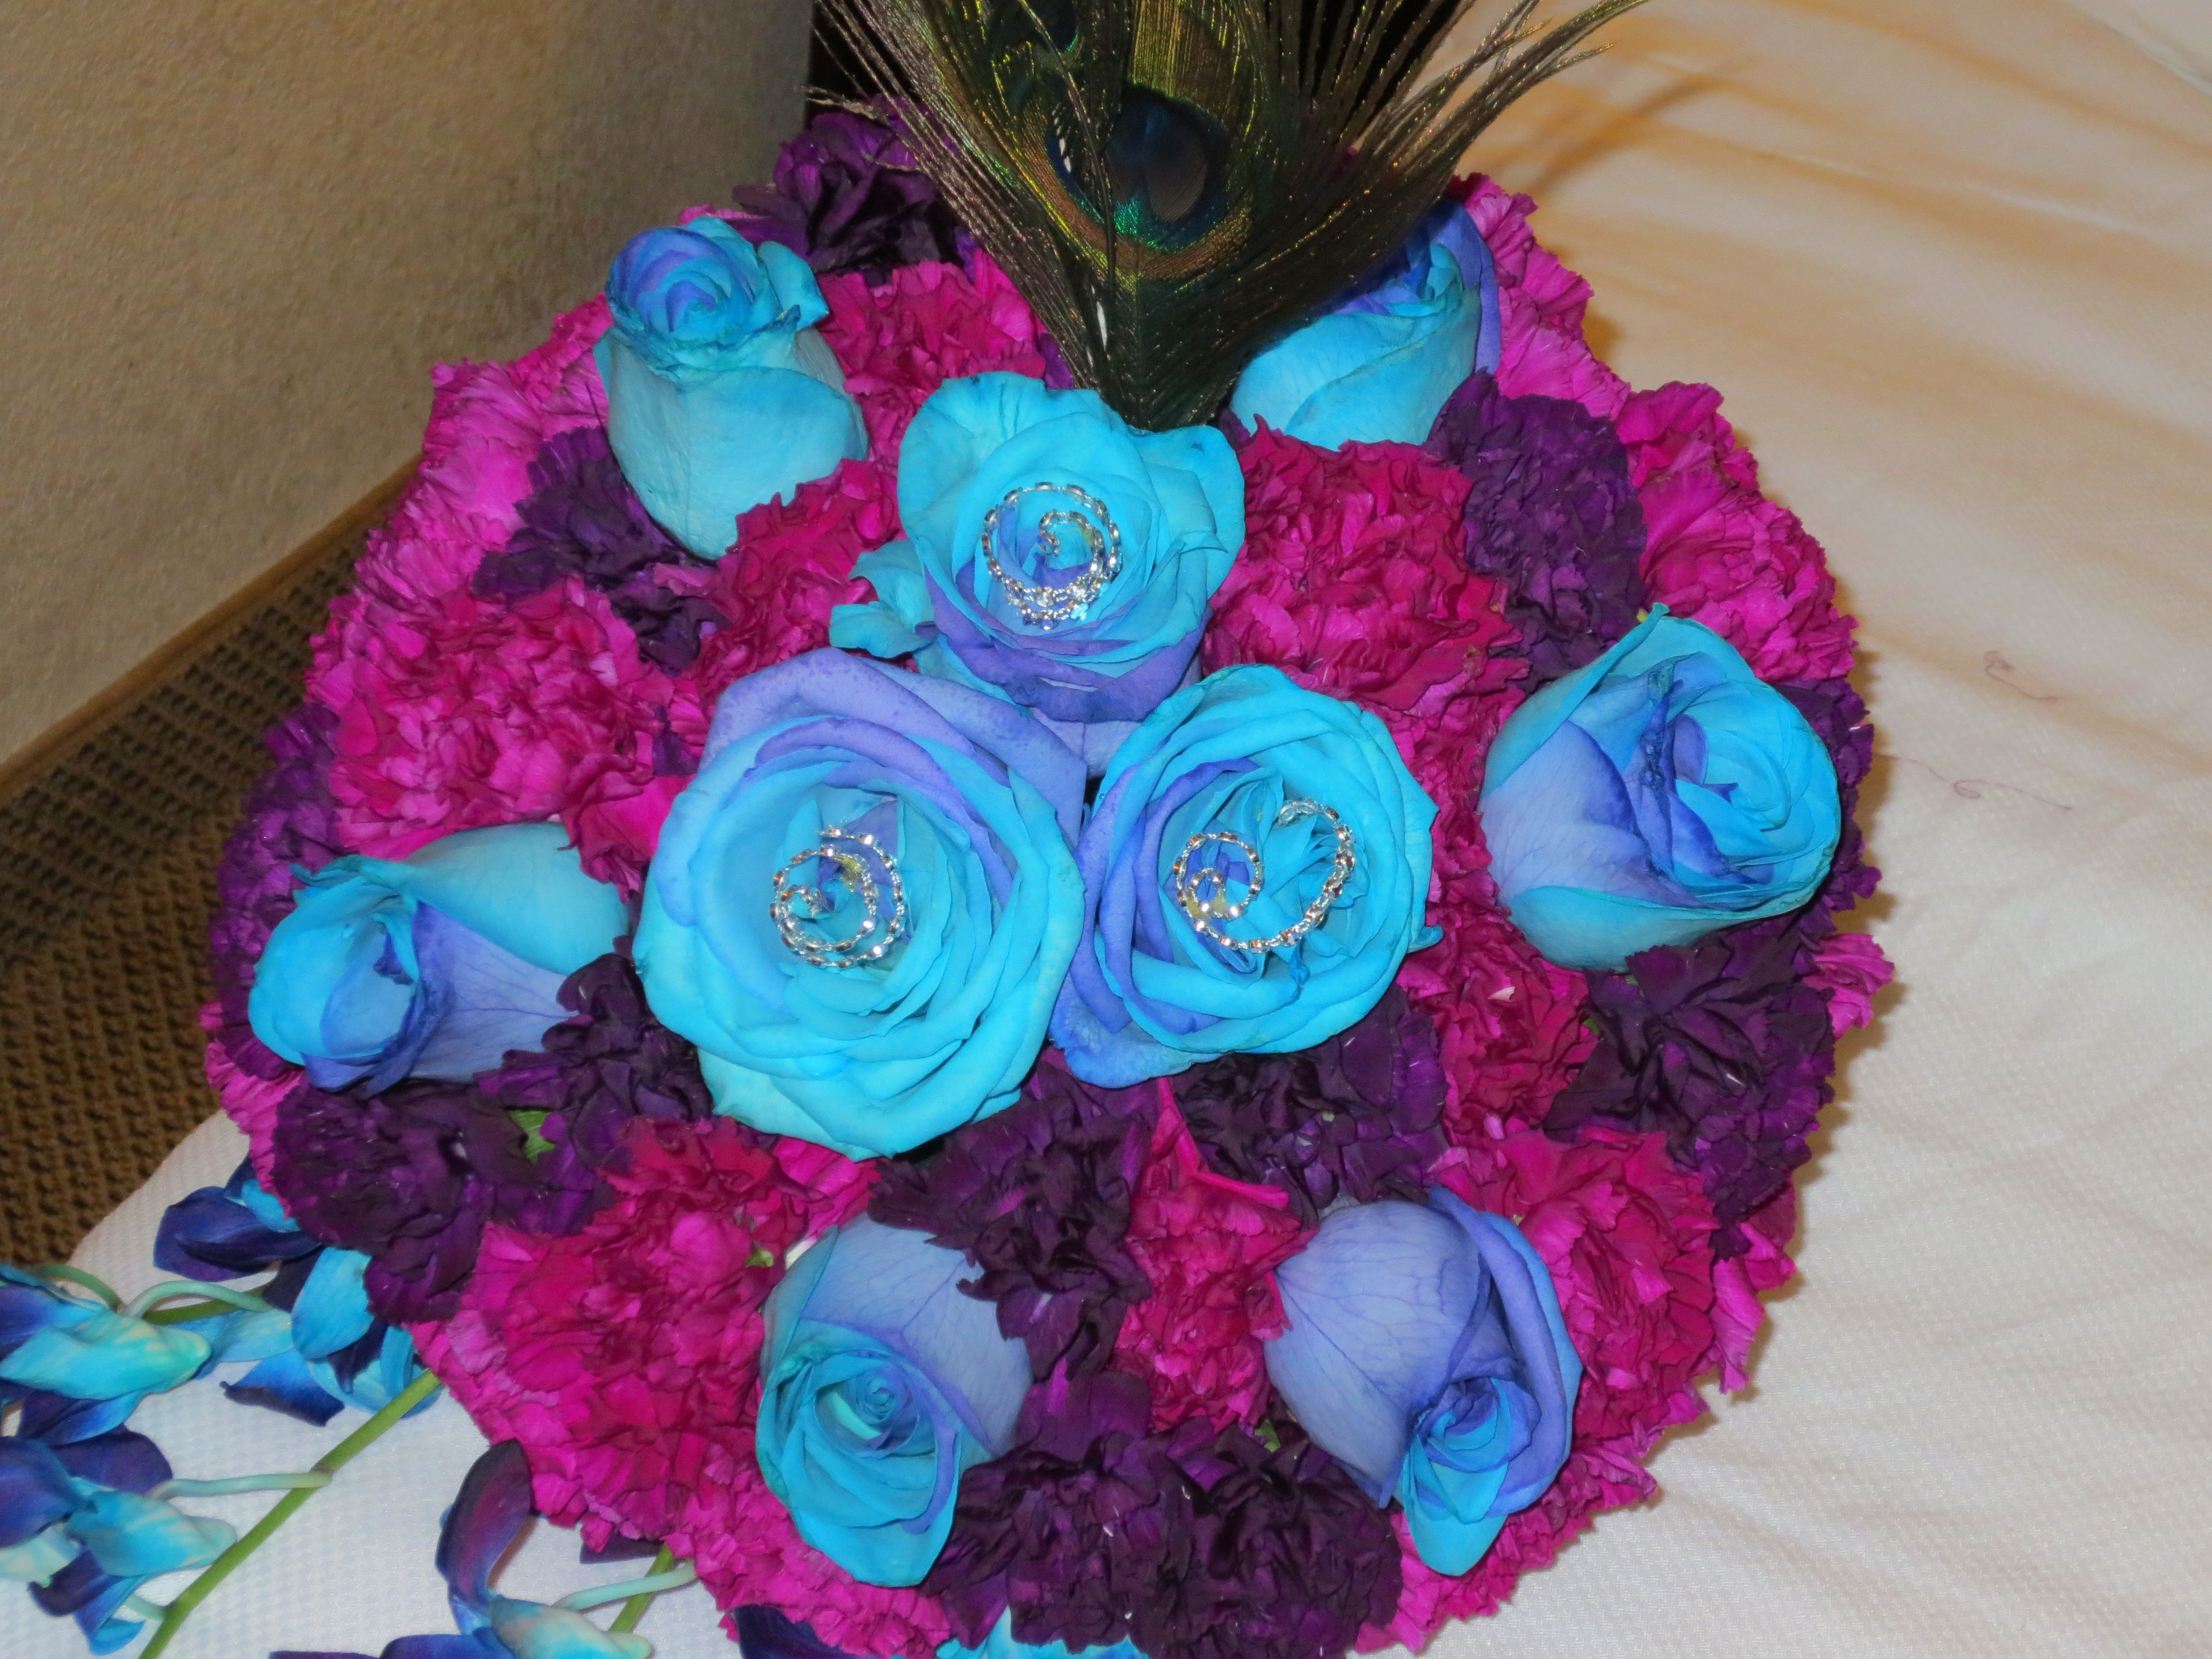 European Style Bridal Bouquet With Tinted Purple And Teal Roses